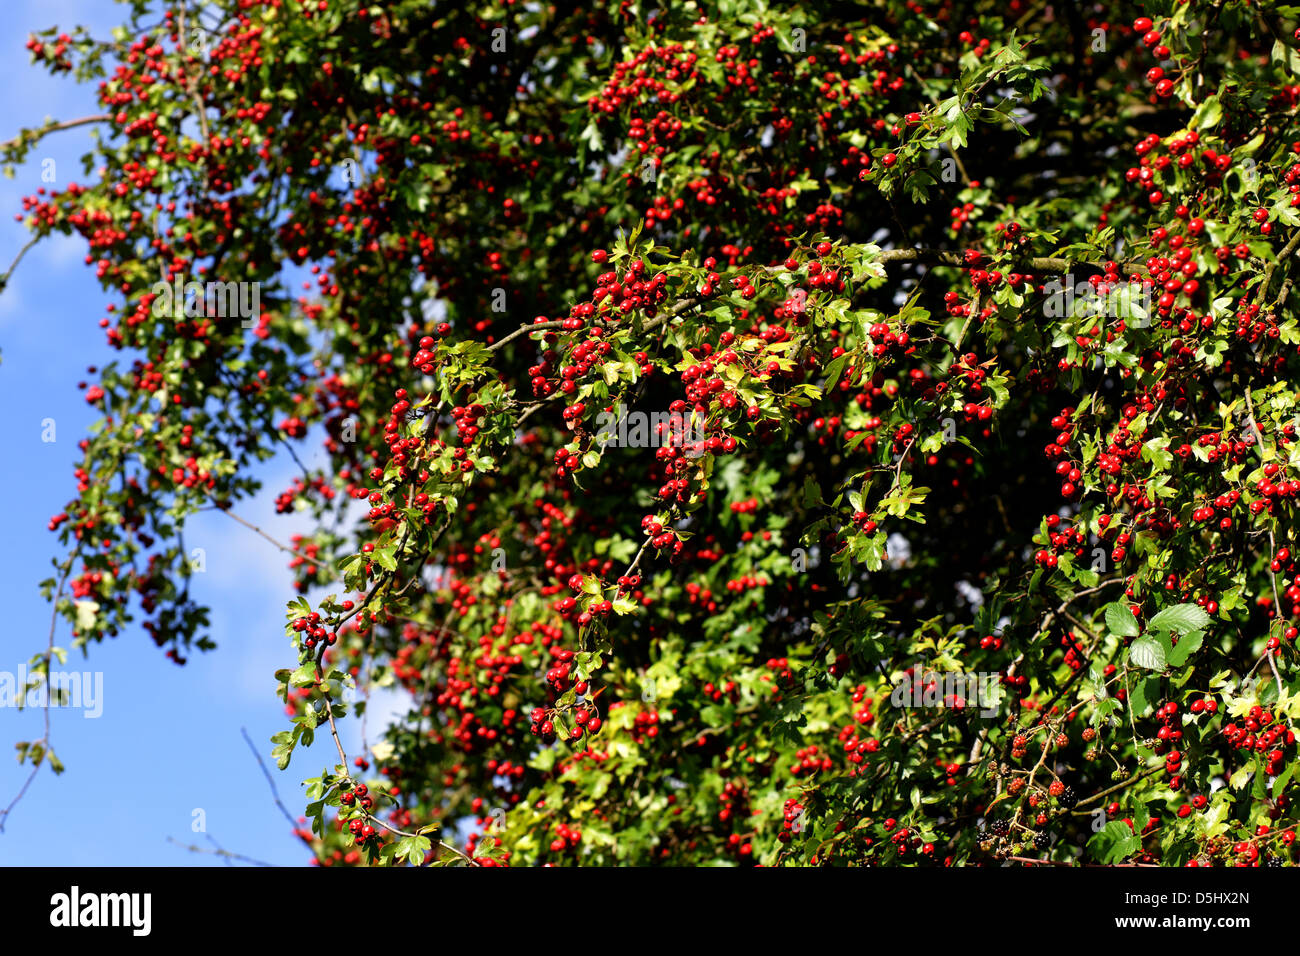 Hawthorn tree with berries - Stock Image